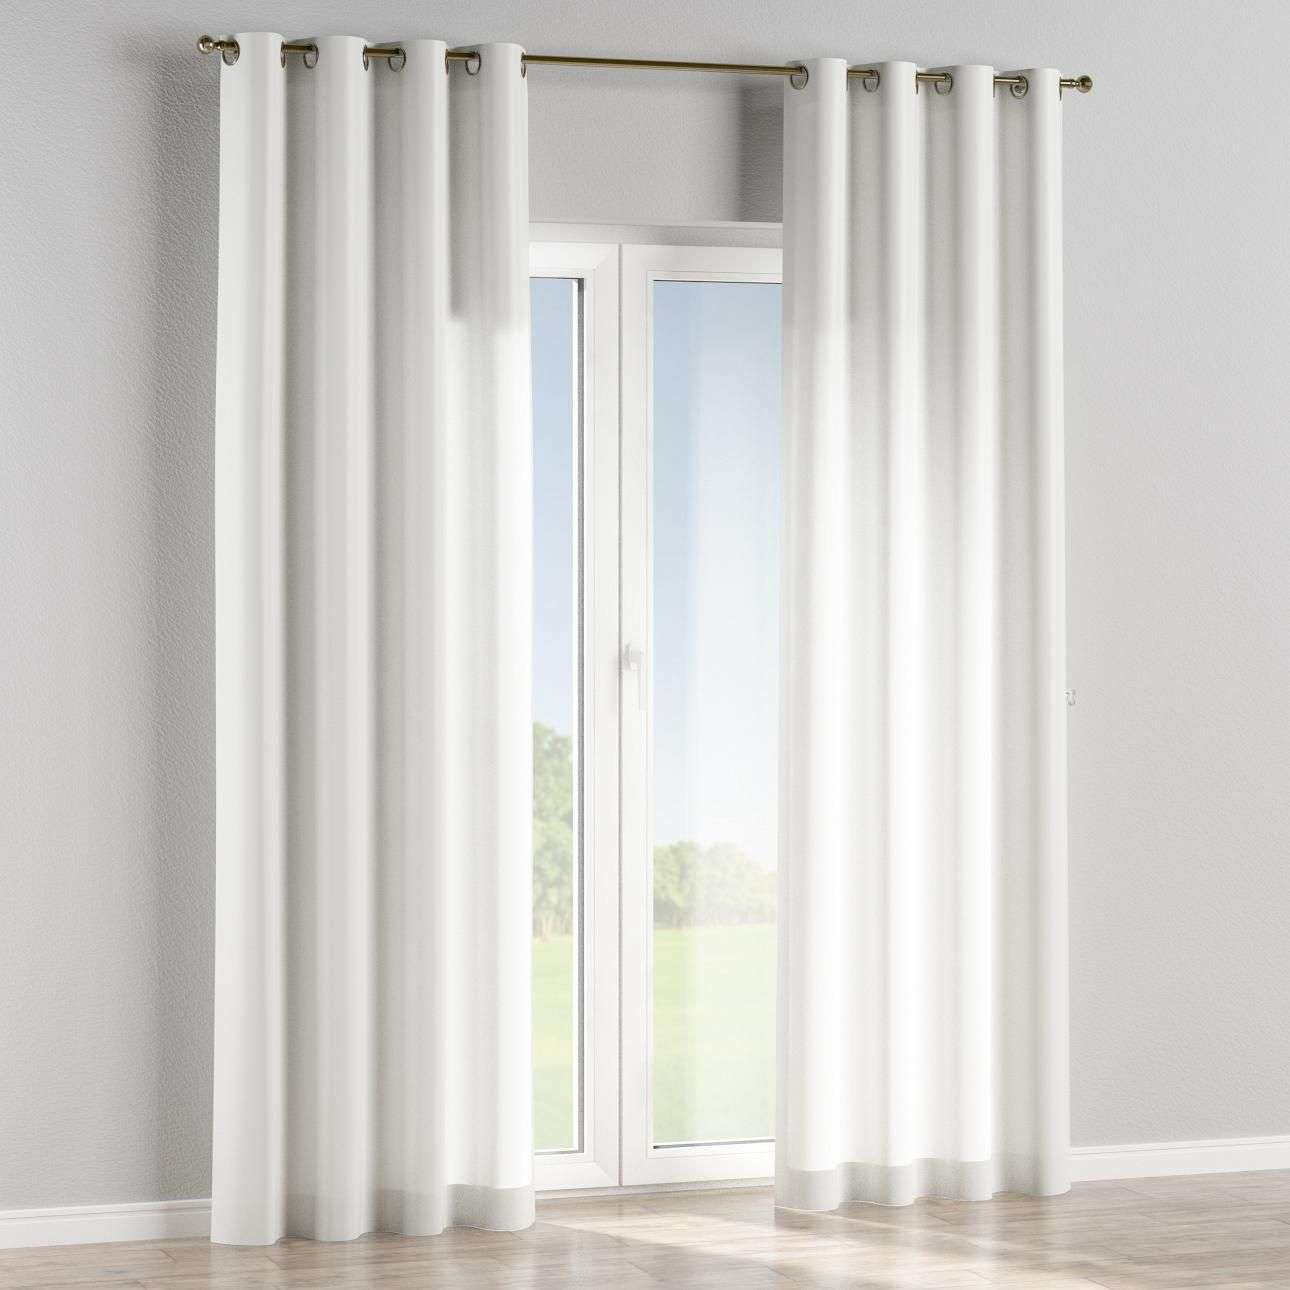 Eyelet curtains in collection Kids/Baby, fabric: 119-13